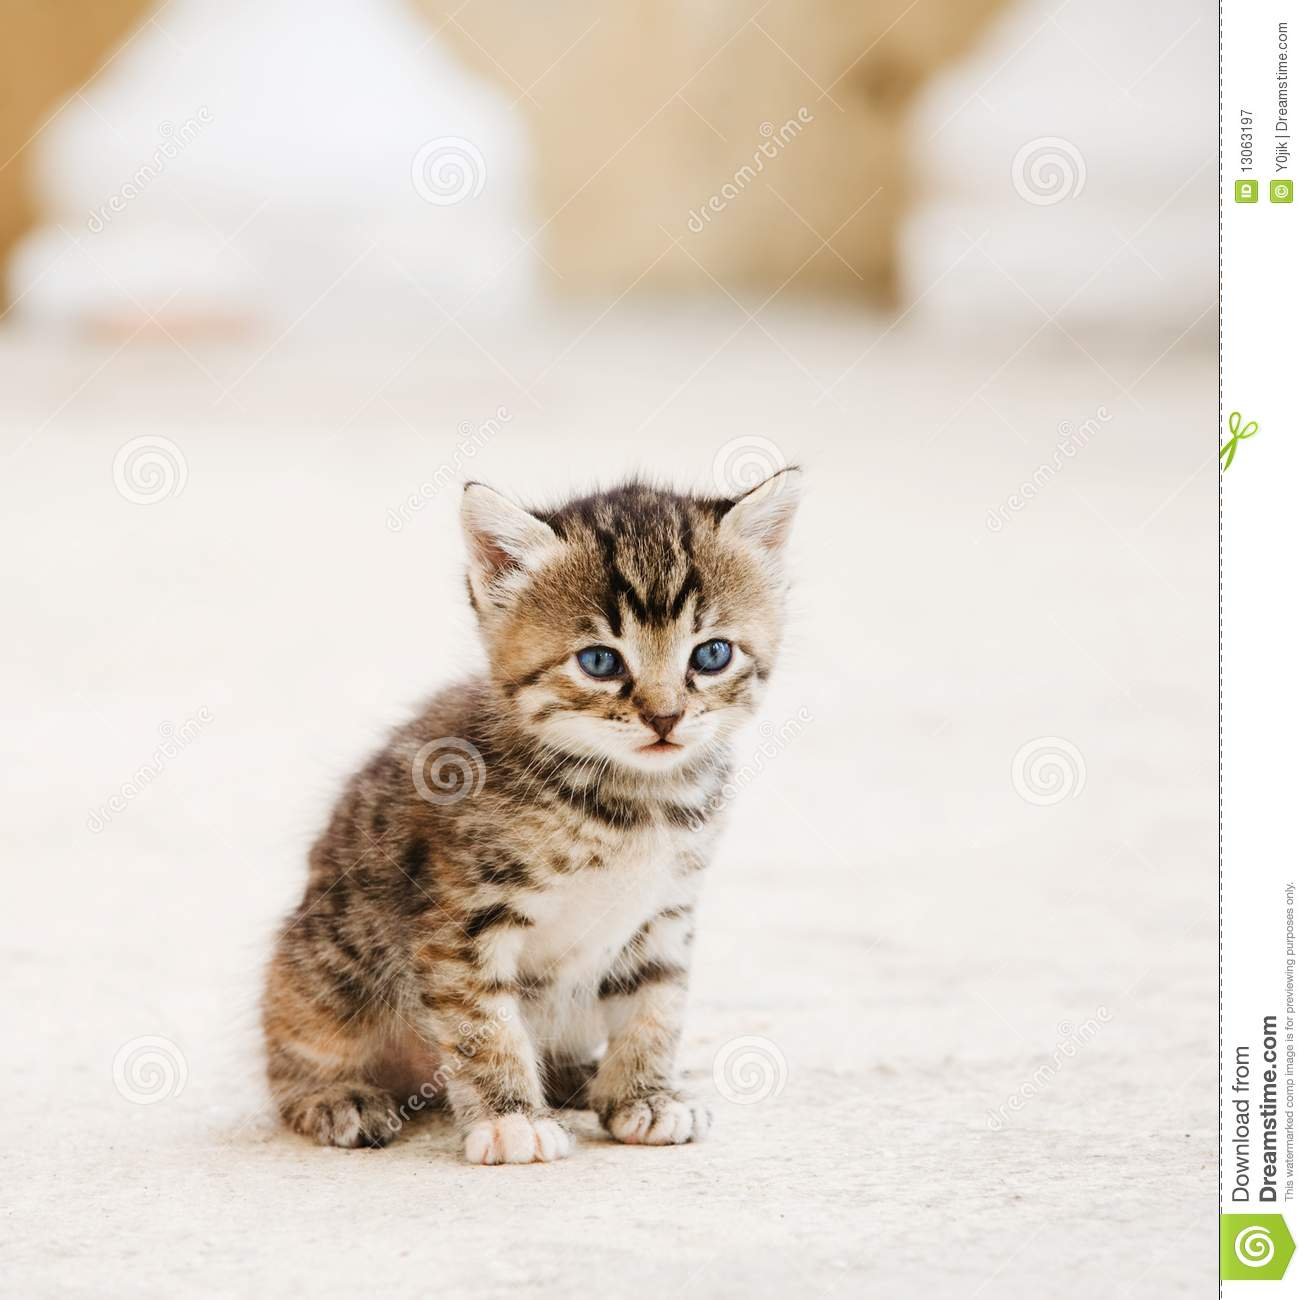 Small adorable kitten stock image Image of eyes fuzzy